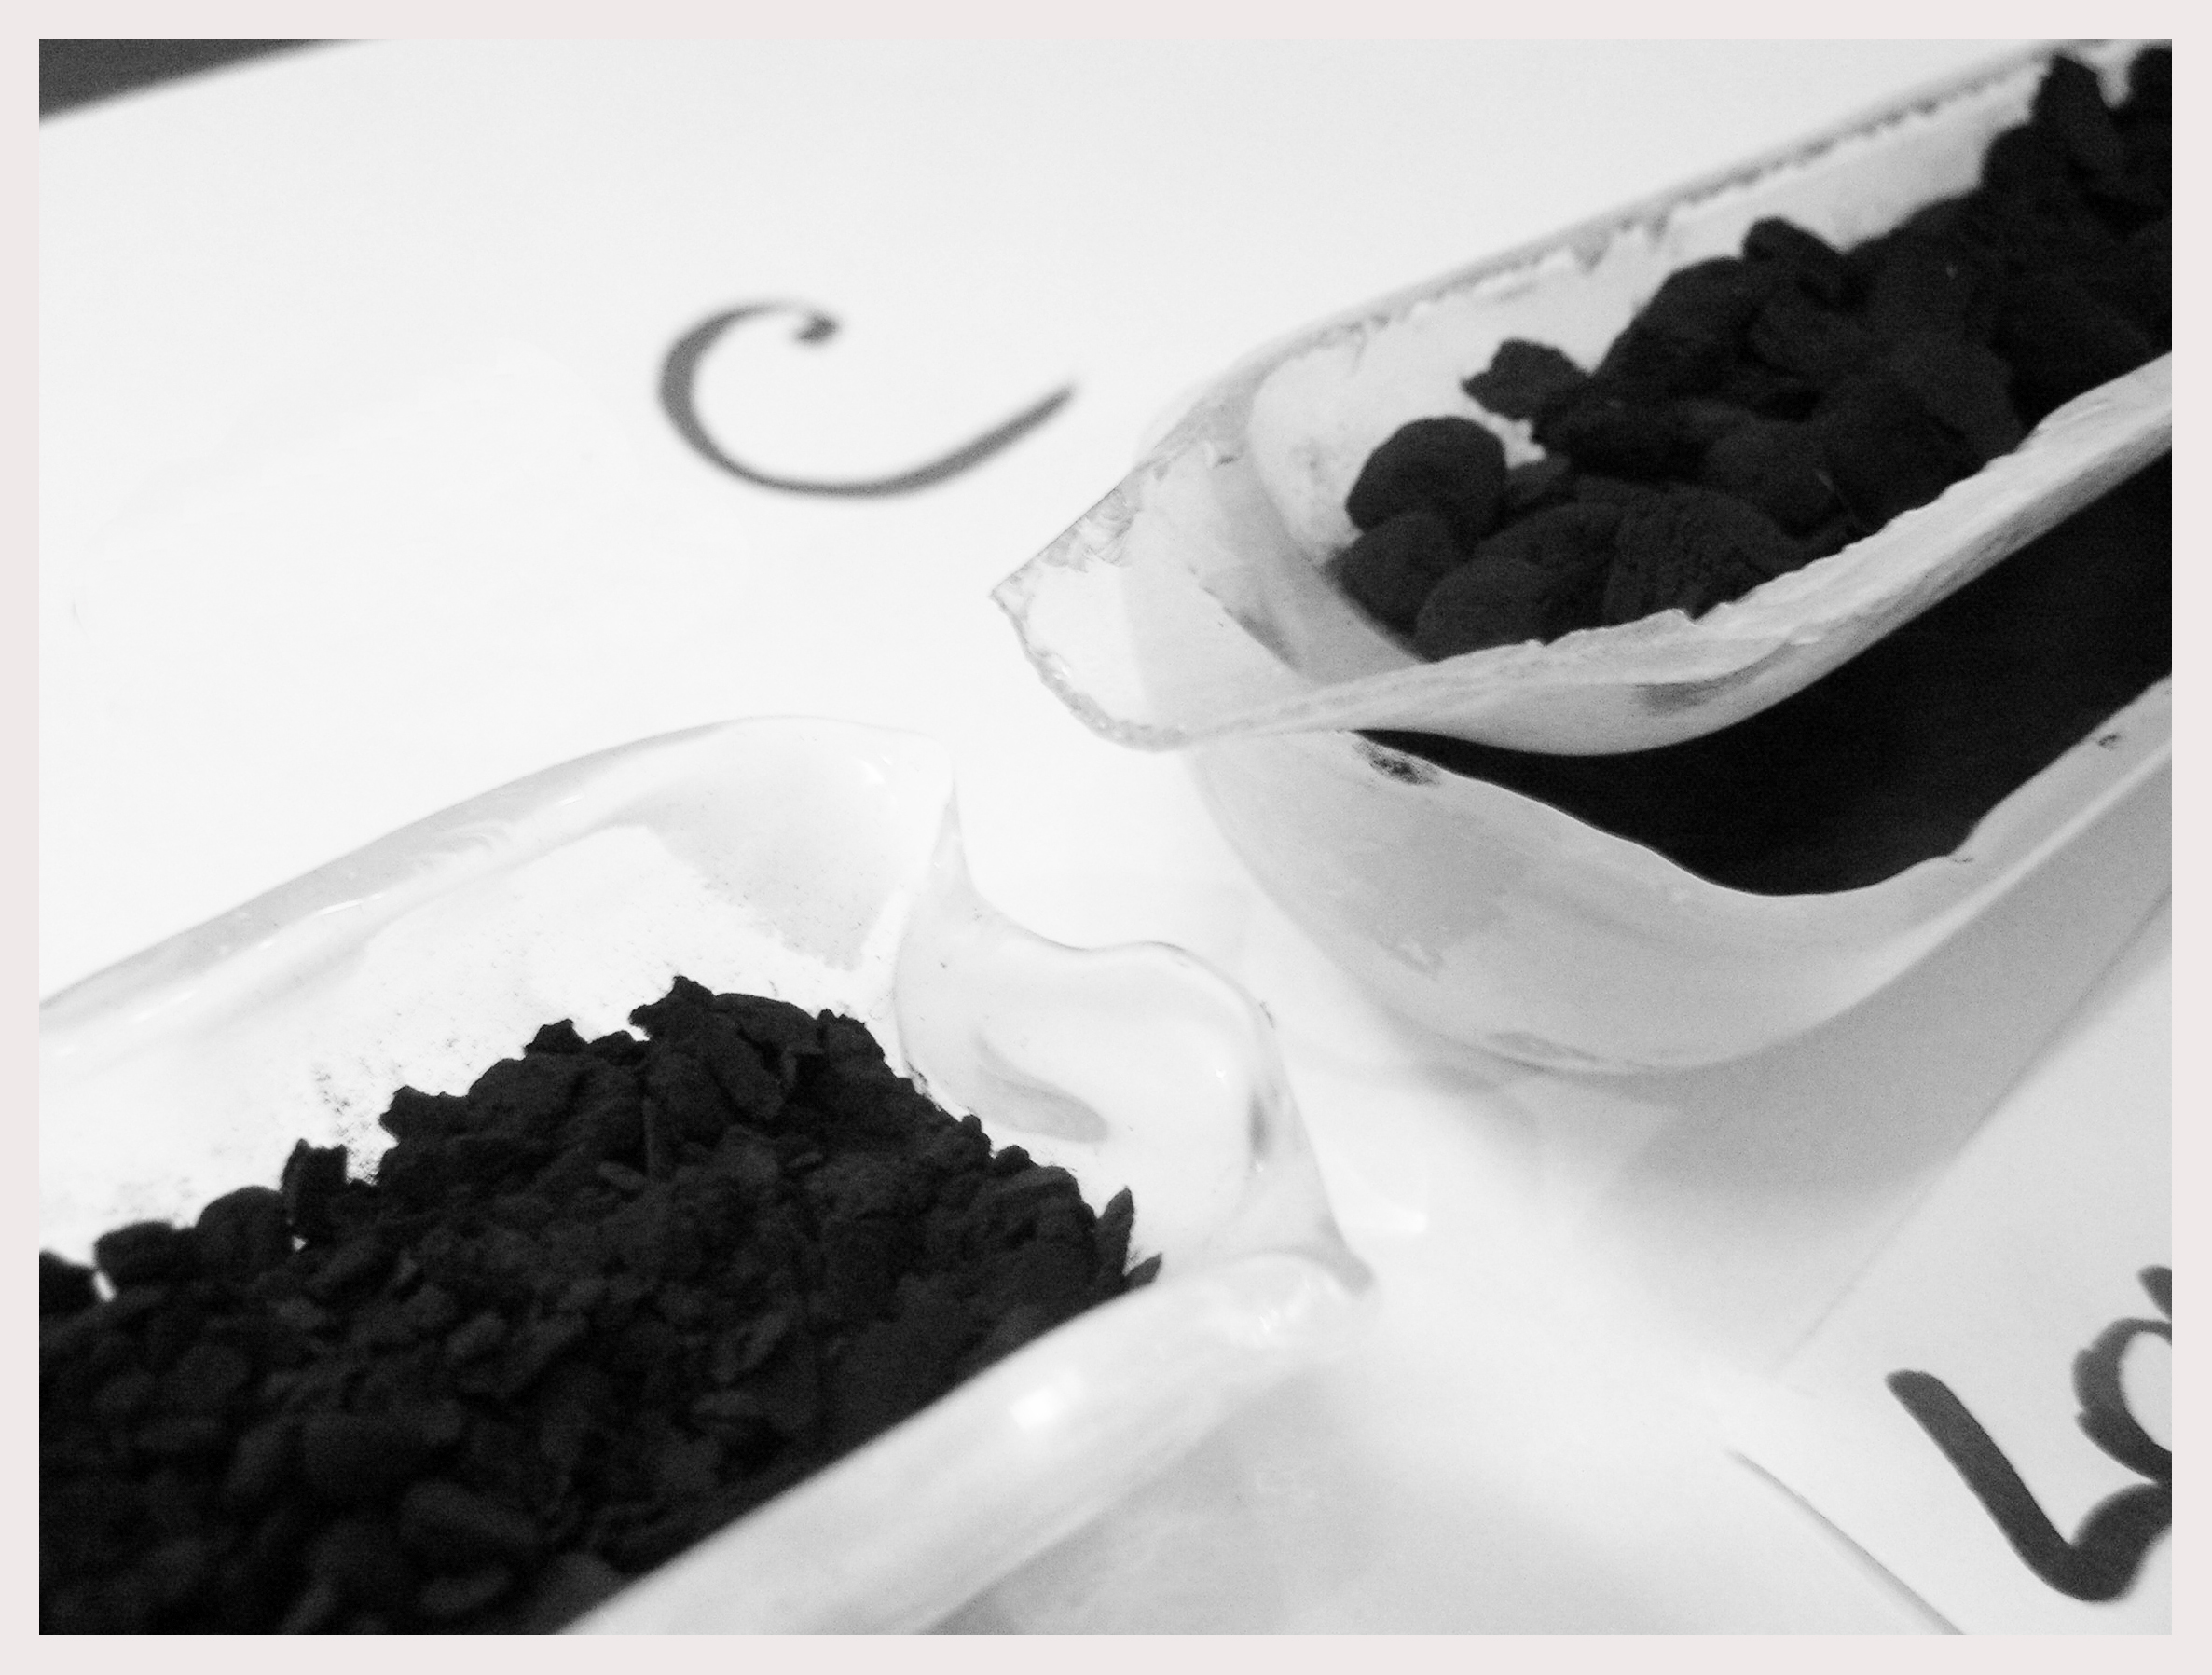 activated carbon, nanoporous carbon, carbide-derived carbon